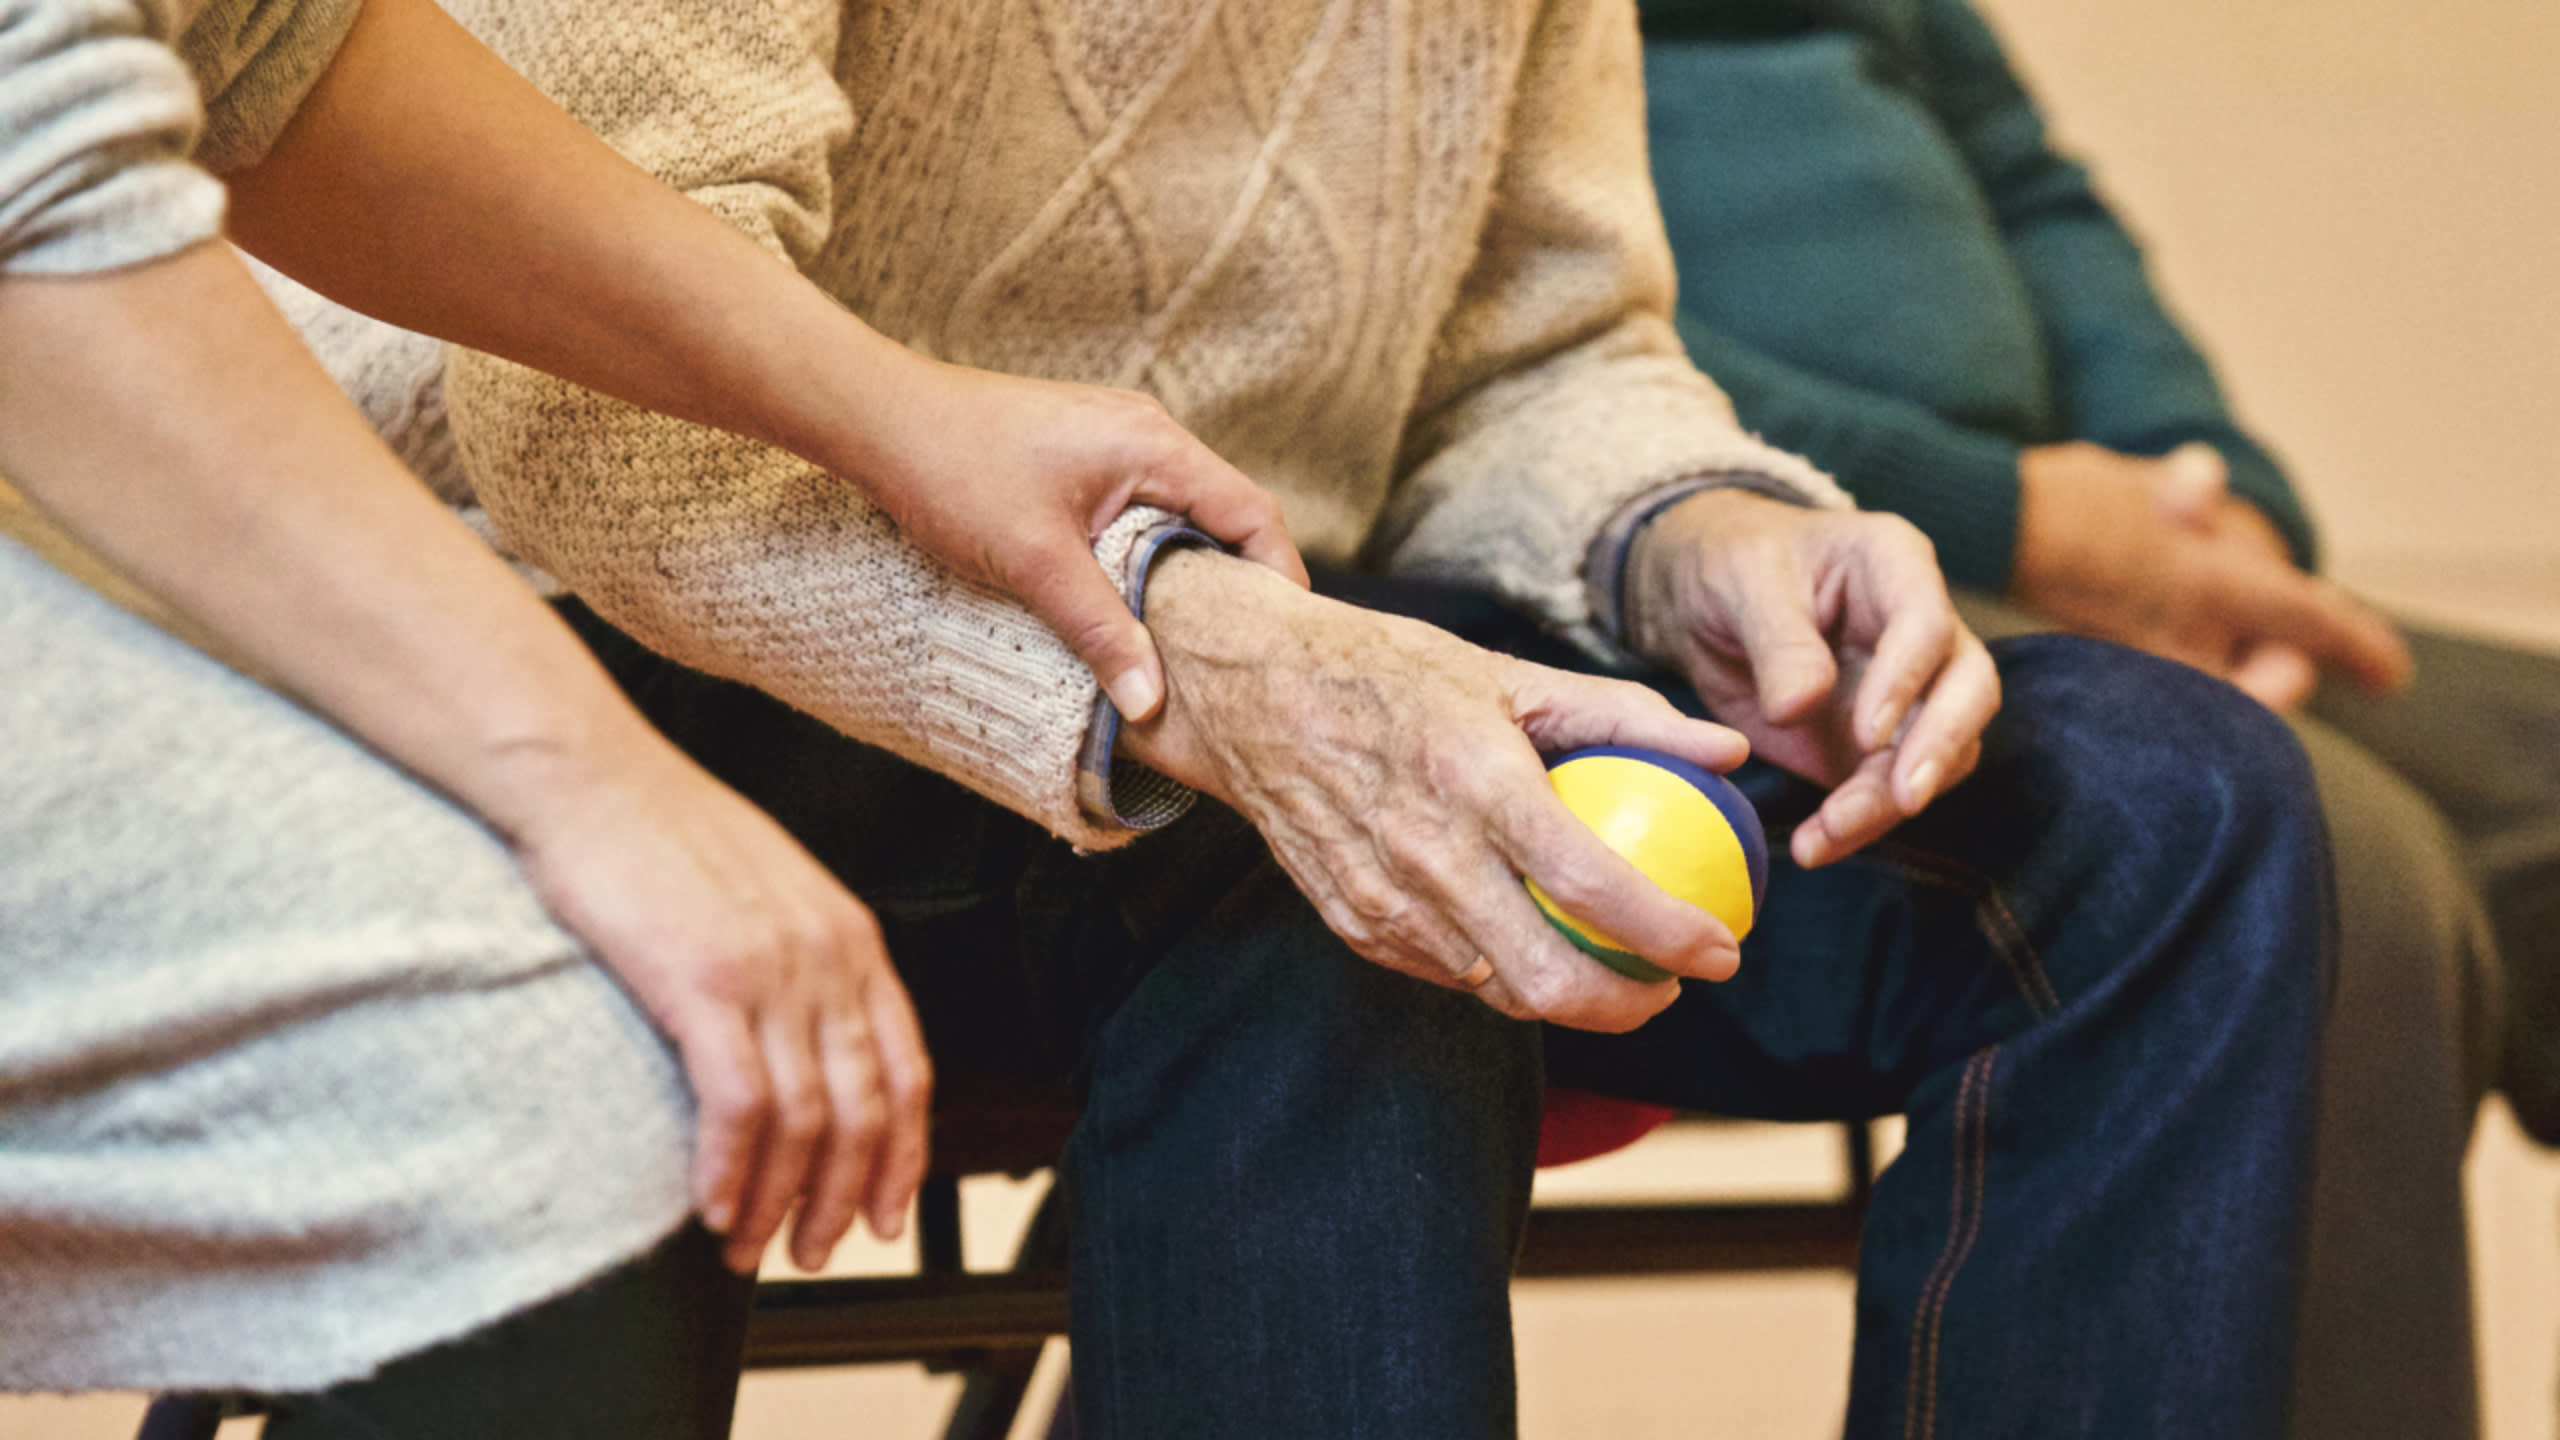 Tax rises needed to fund social care, says IFS